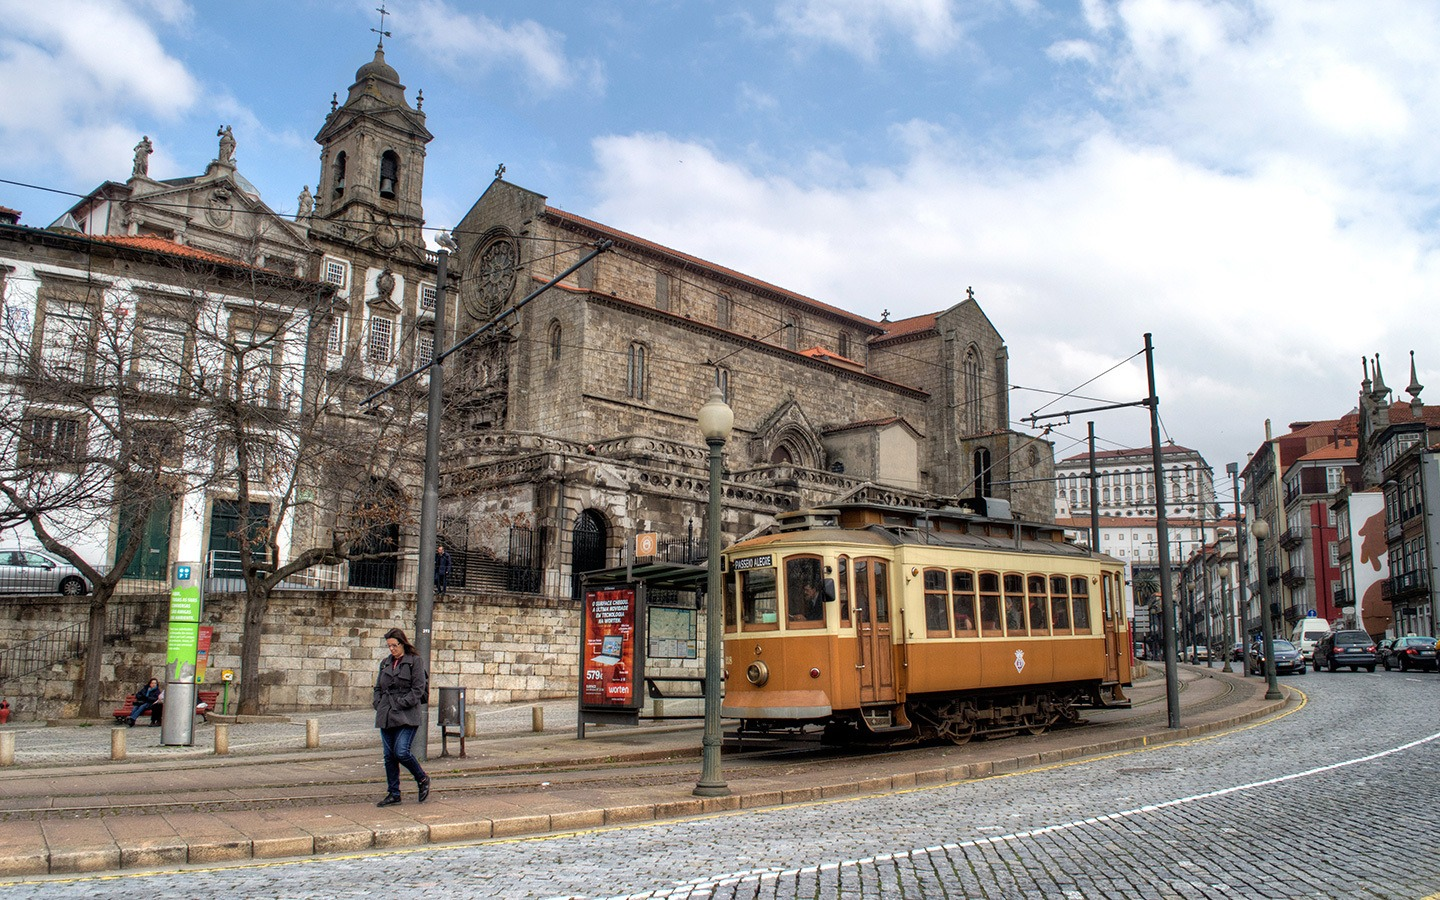 Trams in Porto, Portugal